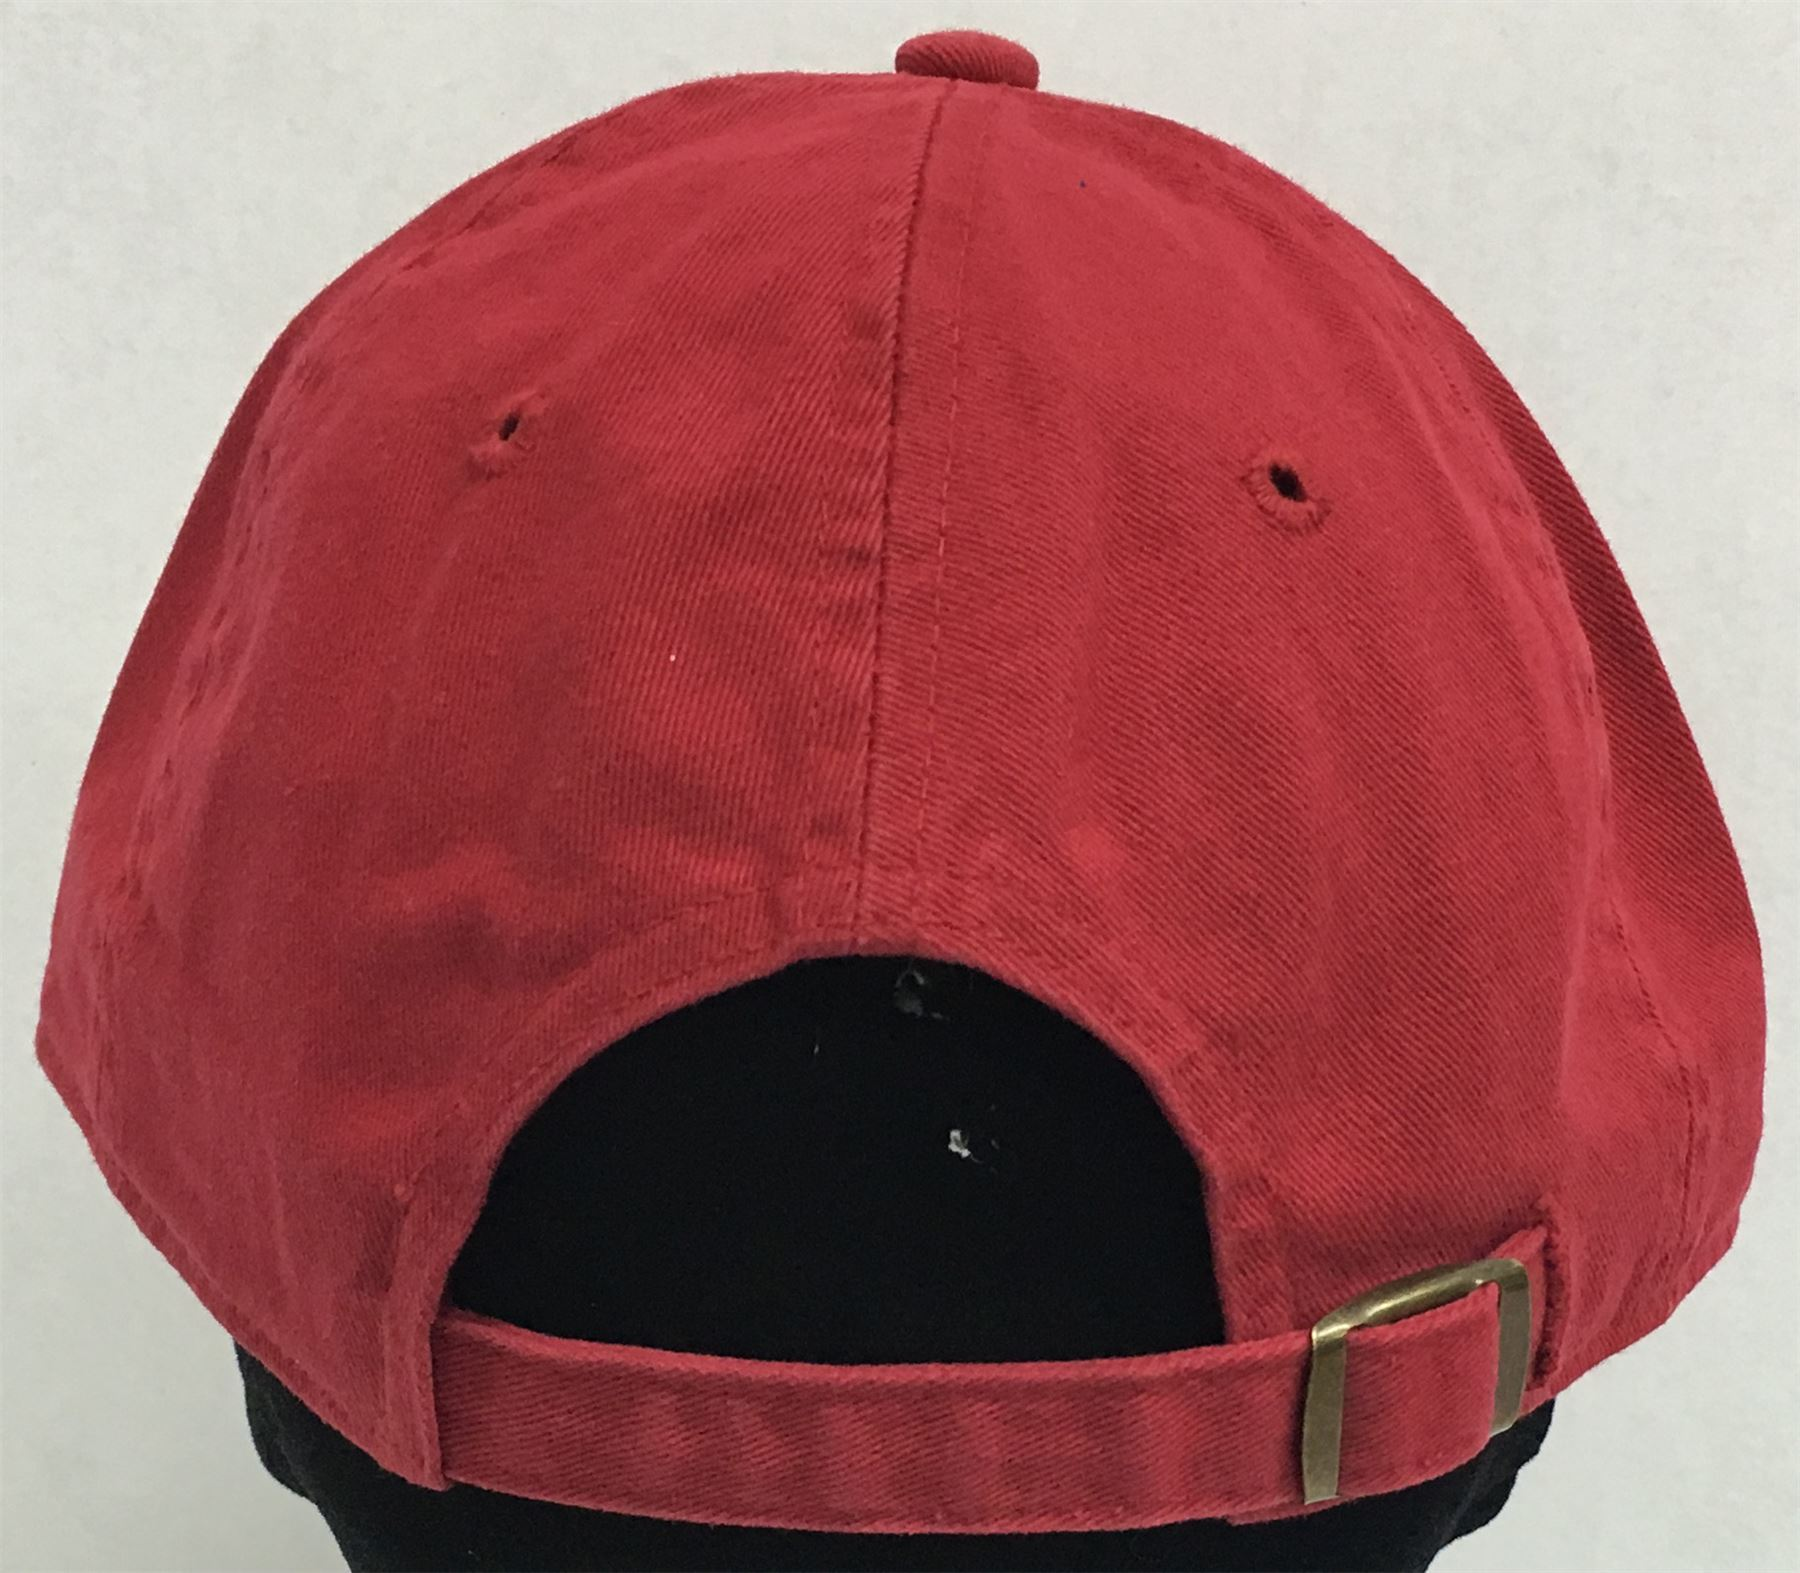 Different Styles Of Hats: PACK OF 10 BASEBALL CAPS 100% COTTON HAT